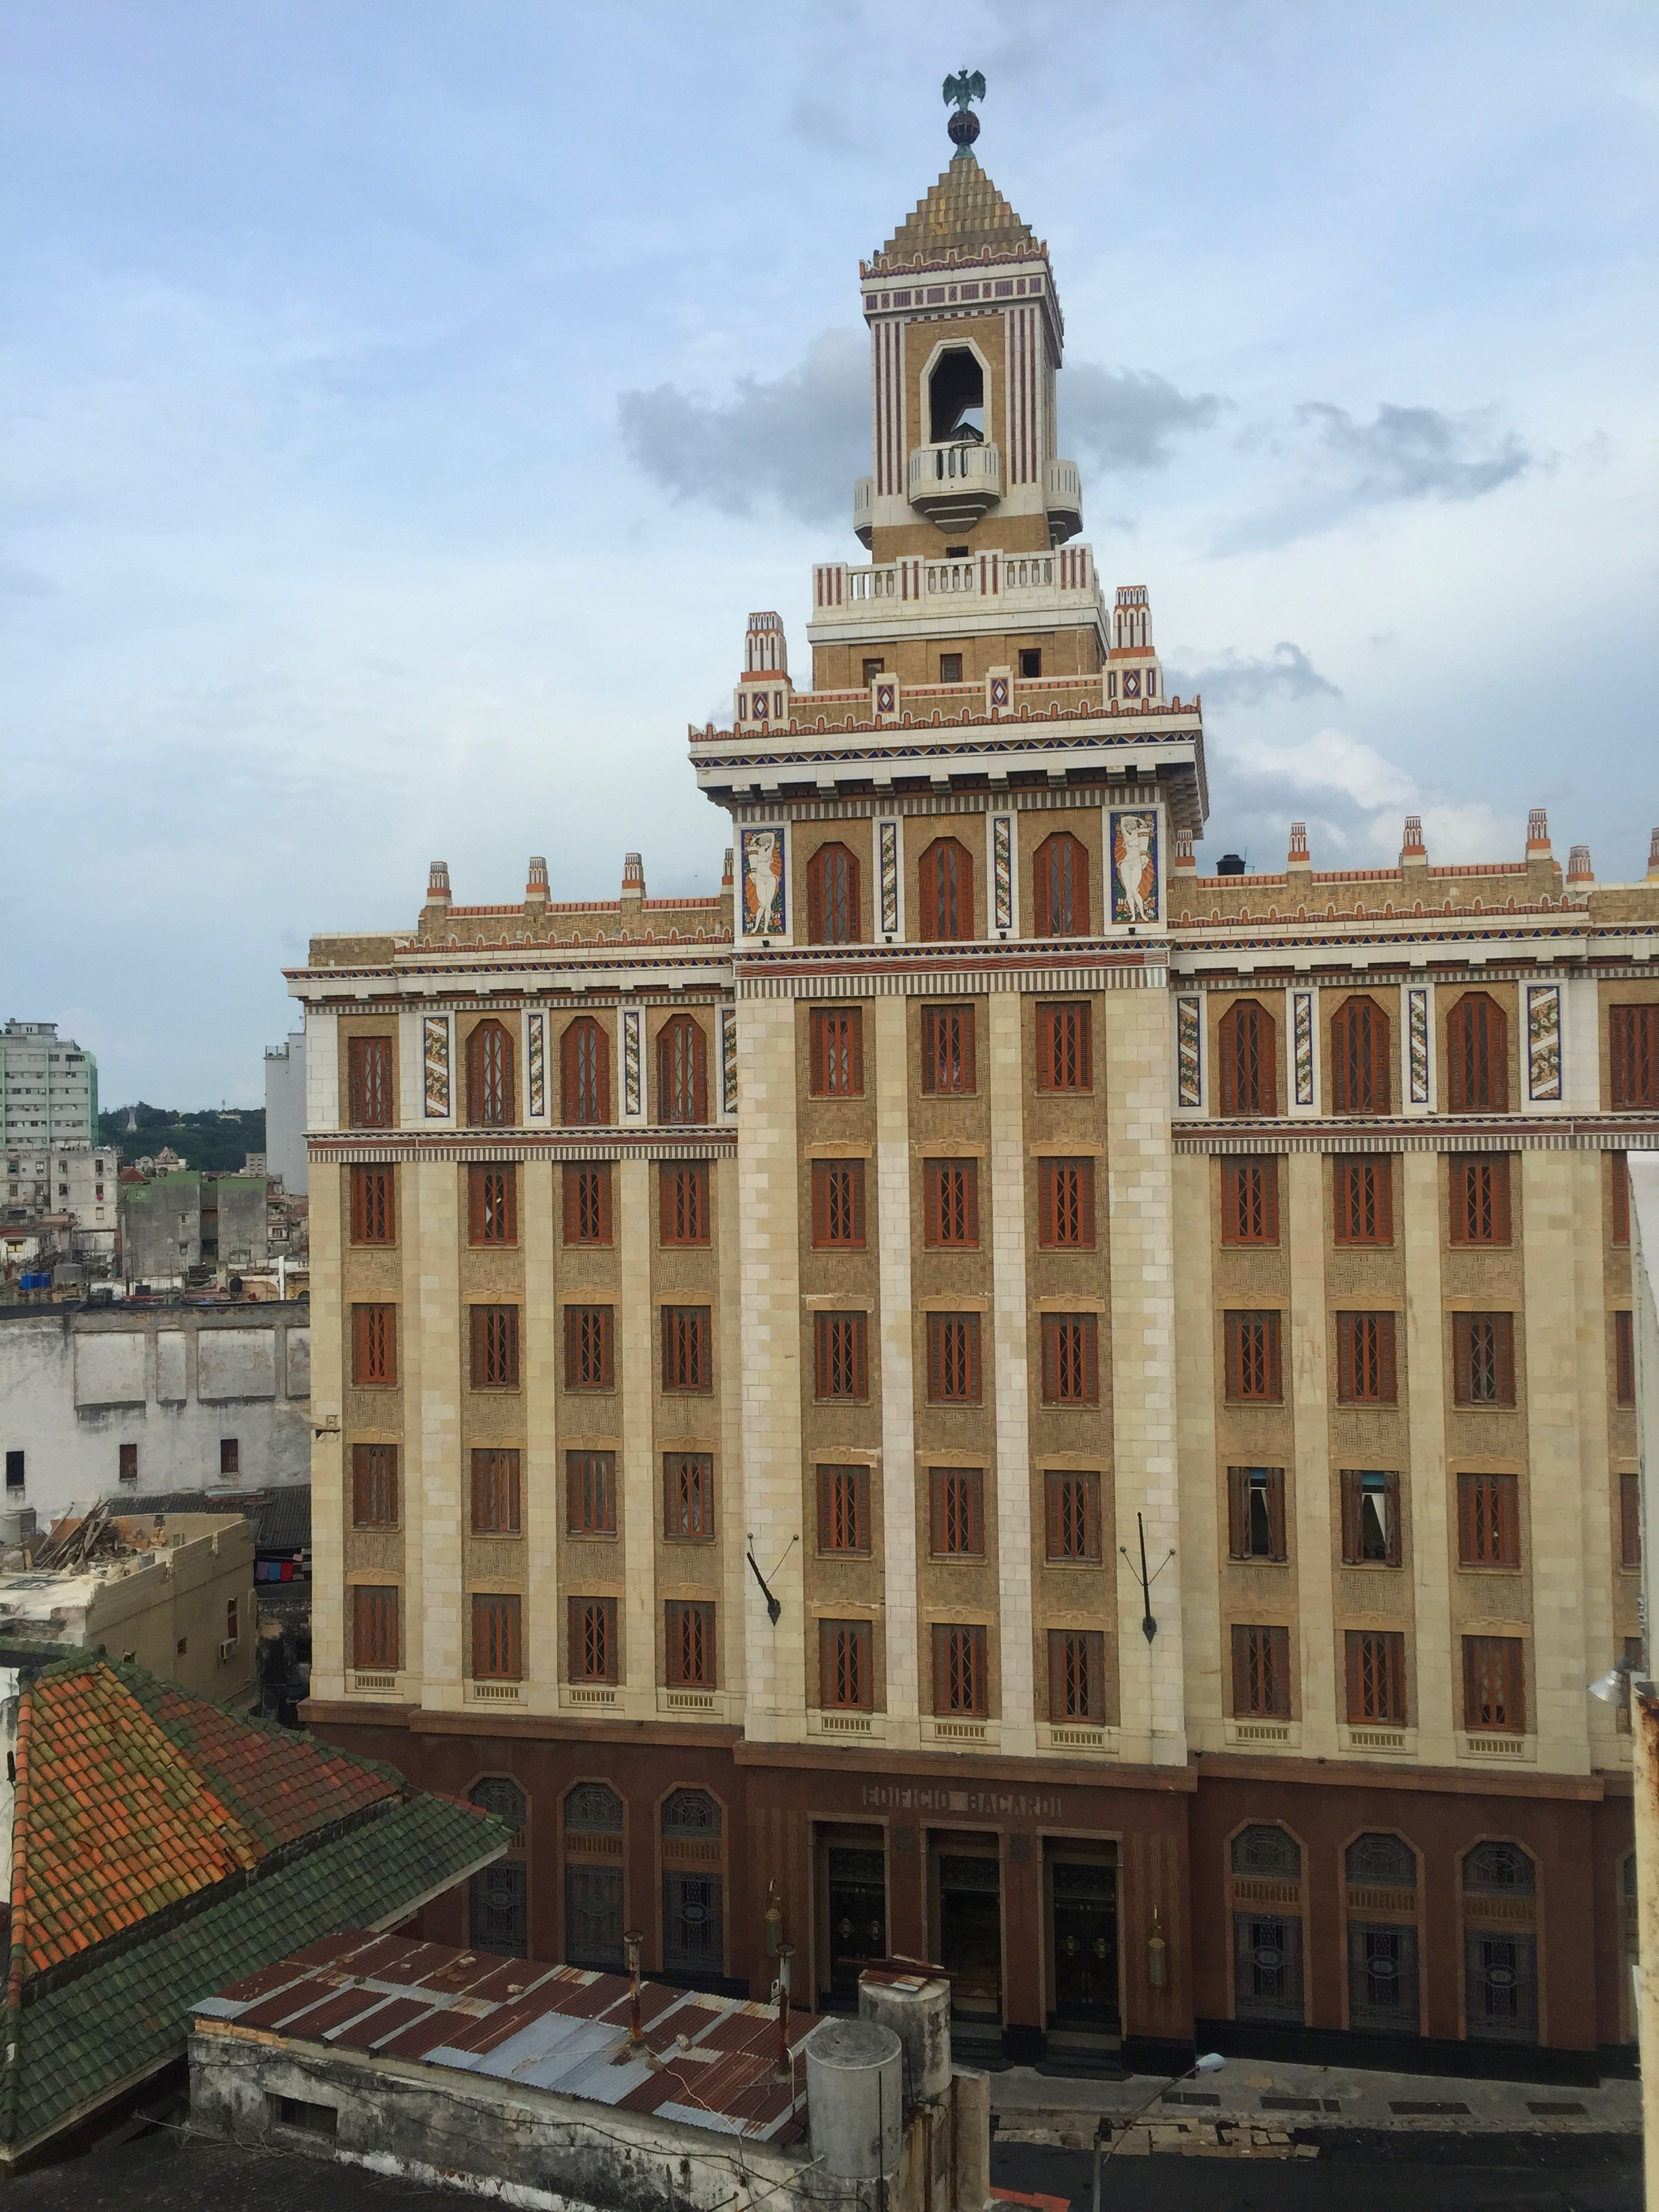 The Barcadi Building in Havana.